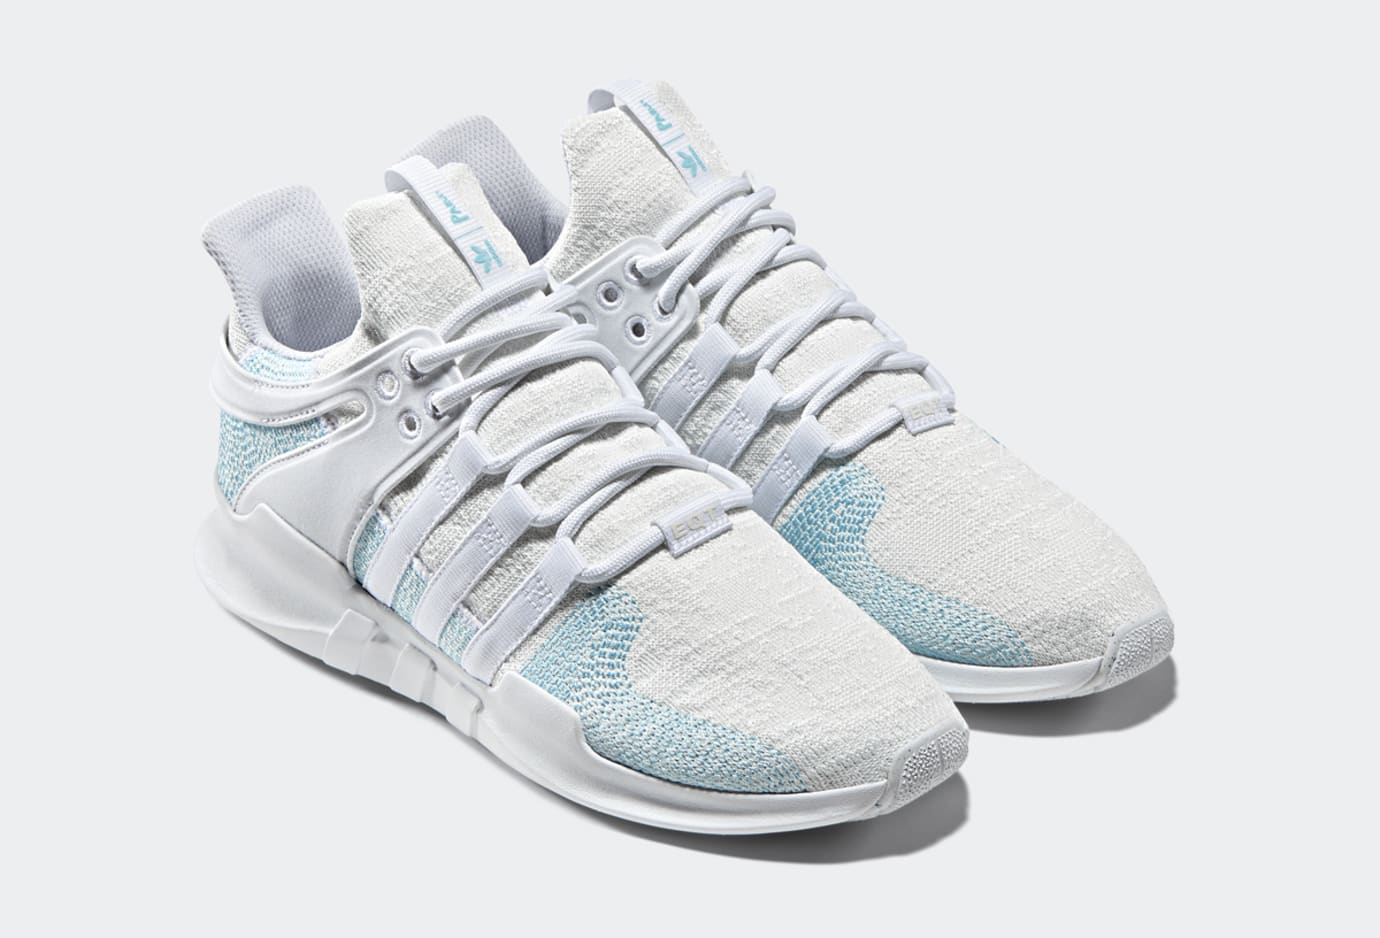 finest selection 47c74 d3819 Parley Adidas EQT Support ADV Release Date | Sole Collector